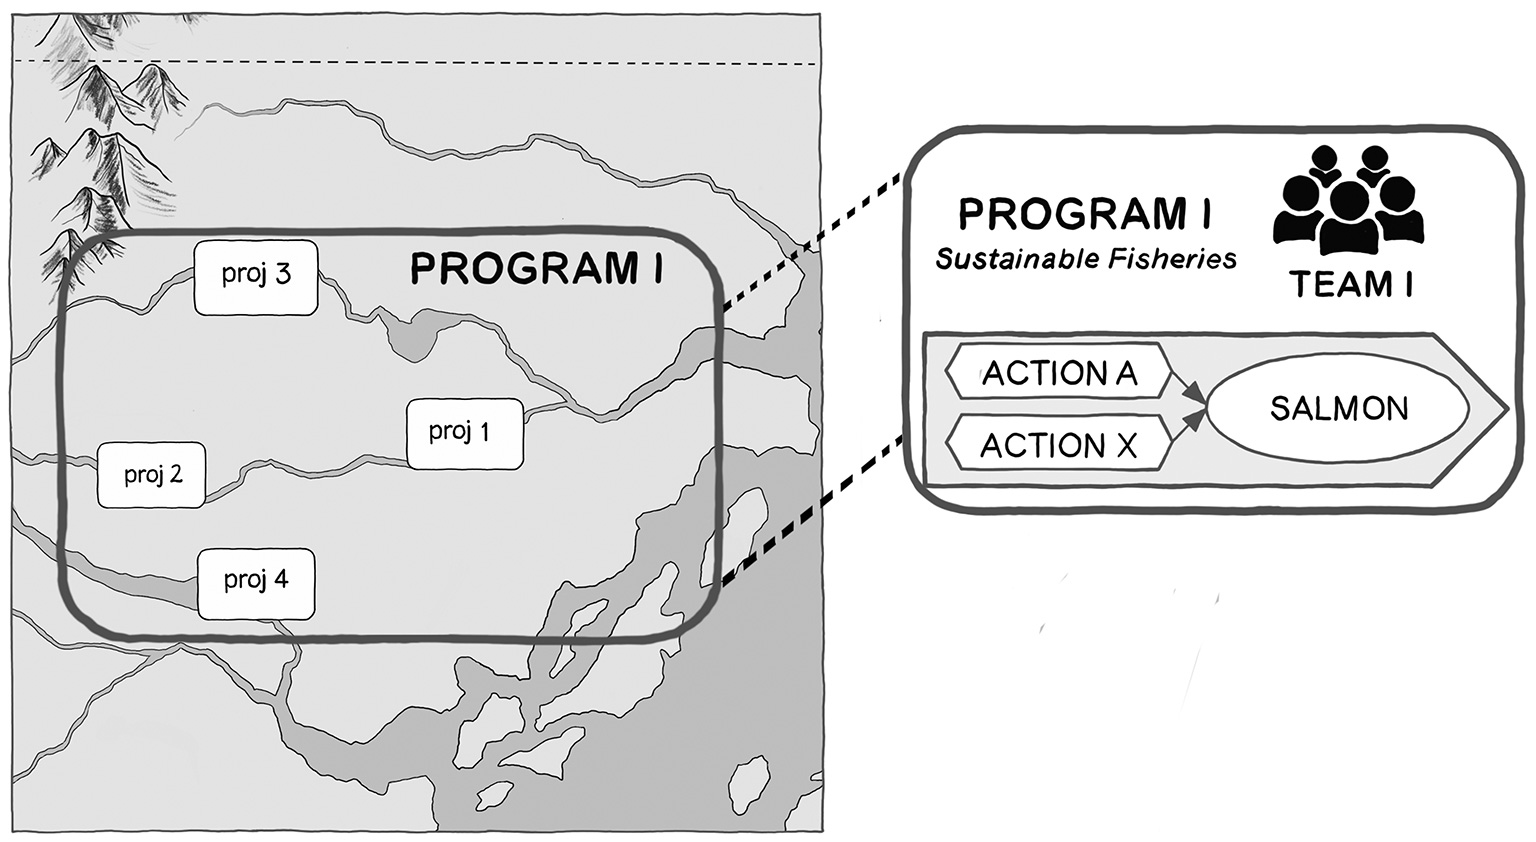 A conservation program is both an administrative or funding unit for a collection of projects as well as a larger scale project in its own right. Illustration by Anna Balla, from Pathways to Success, forthcoming from Island Press.